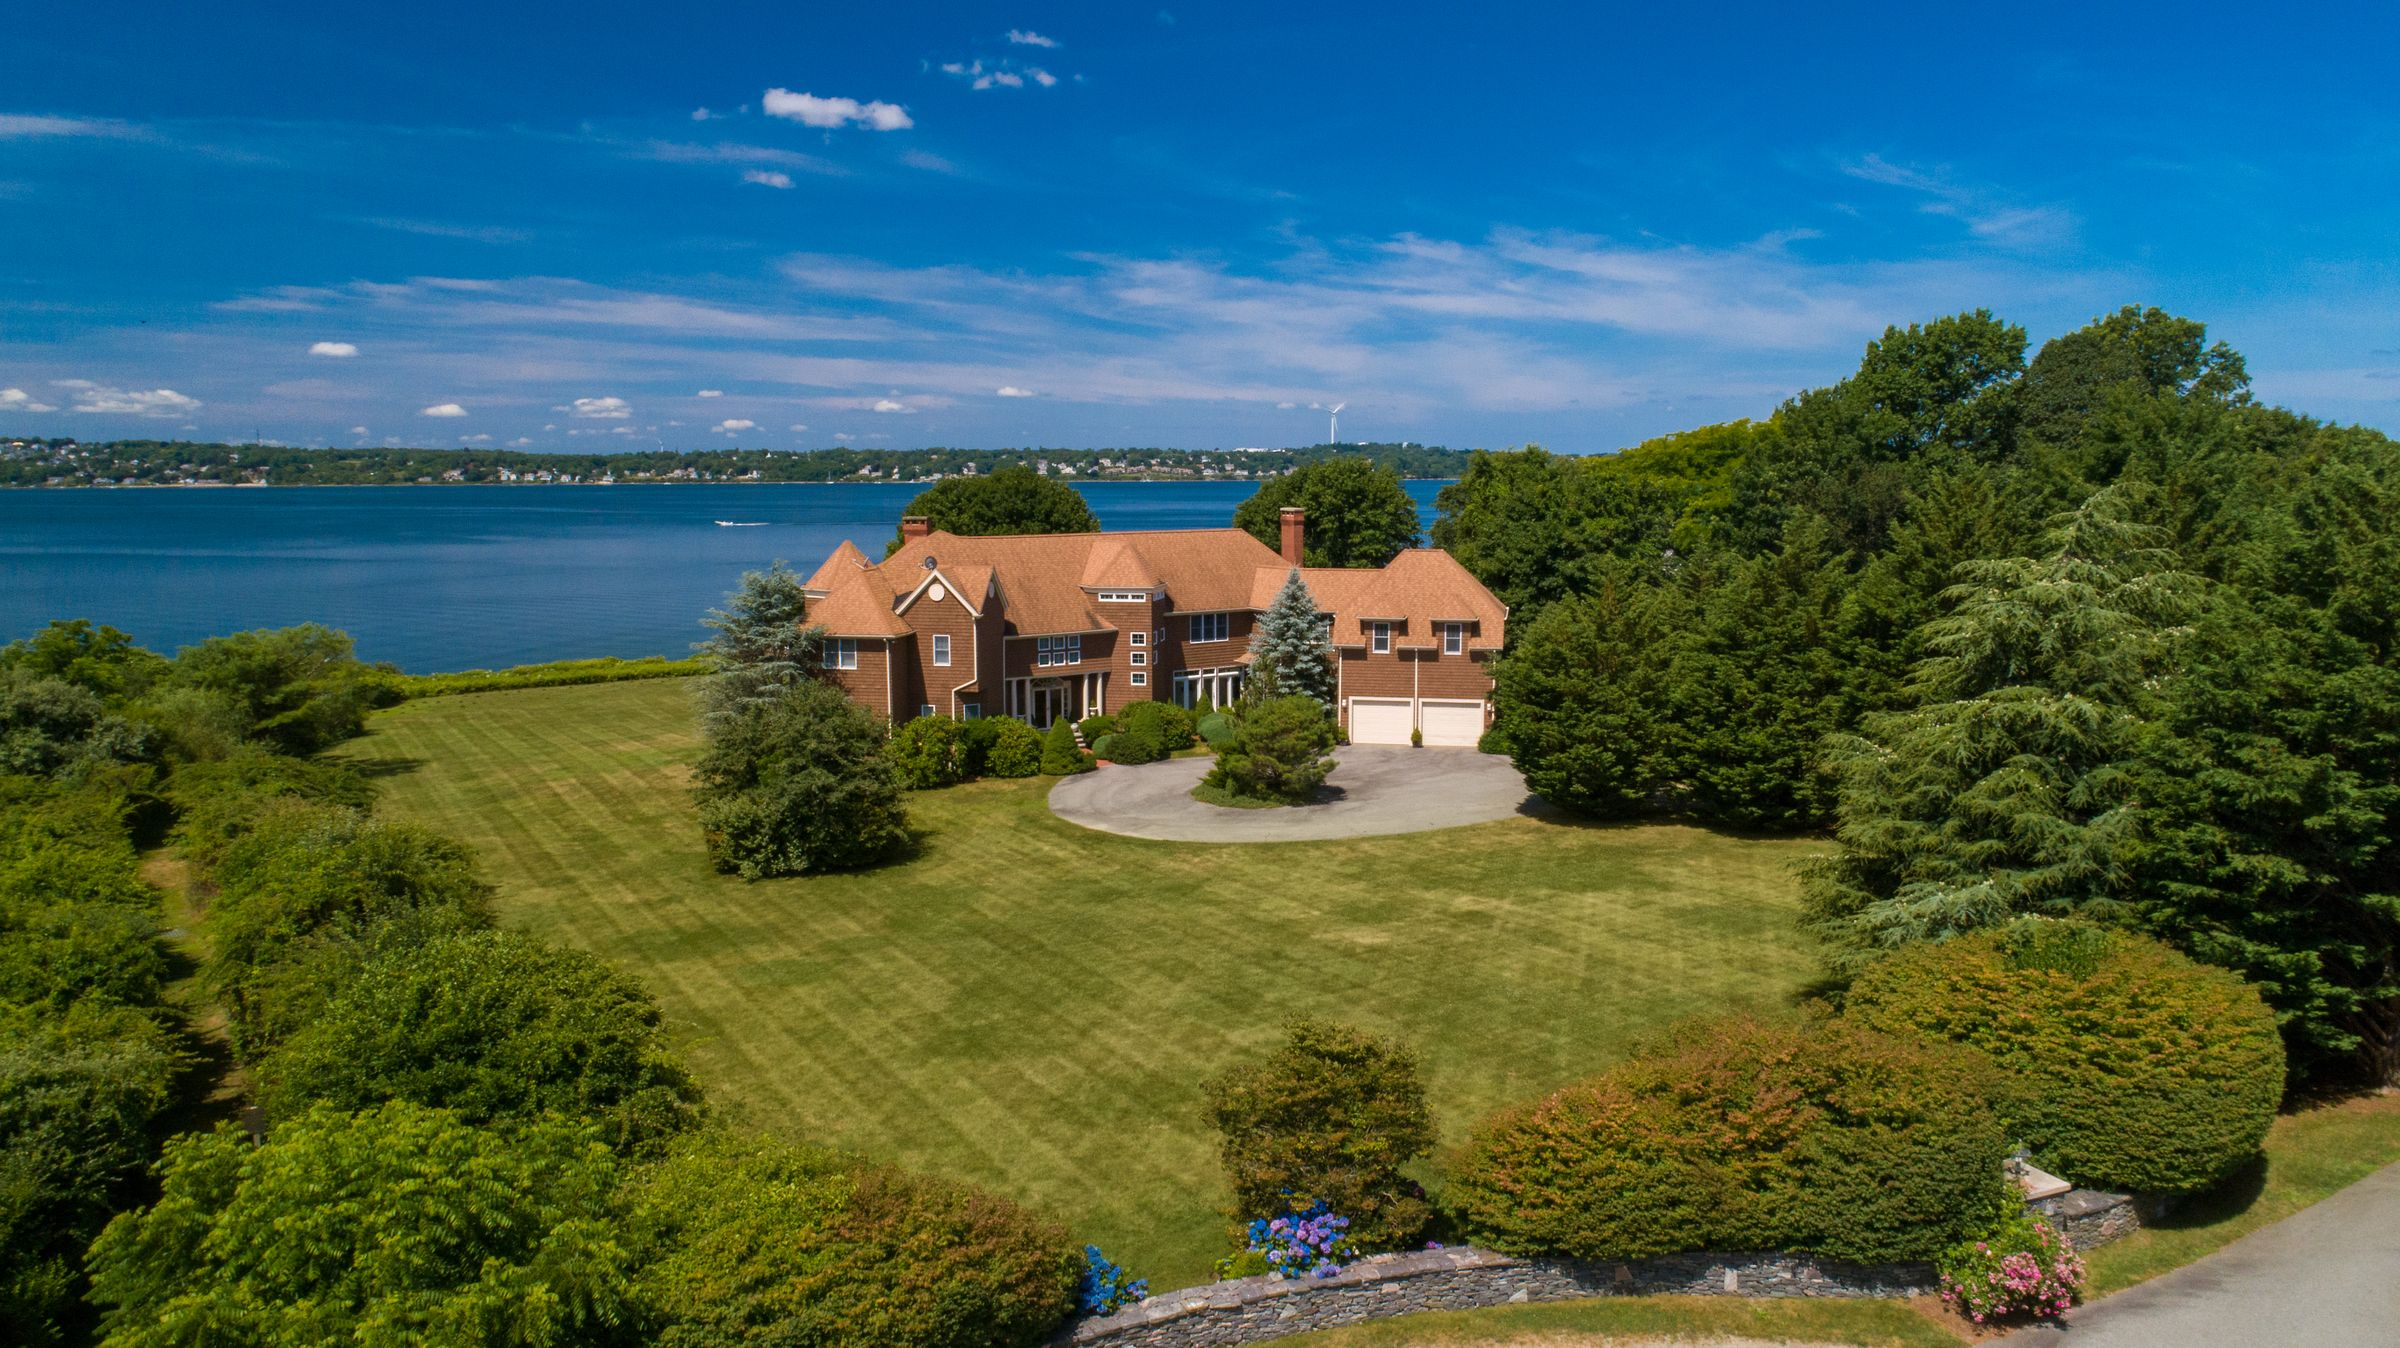 LILA DELMAN COMPASS SELLS WATERFRONT HOME,  MARKING THE HIGHEST SALE IN TIVERTON SINCE 2018*